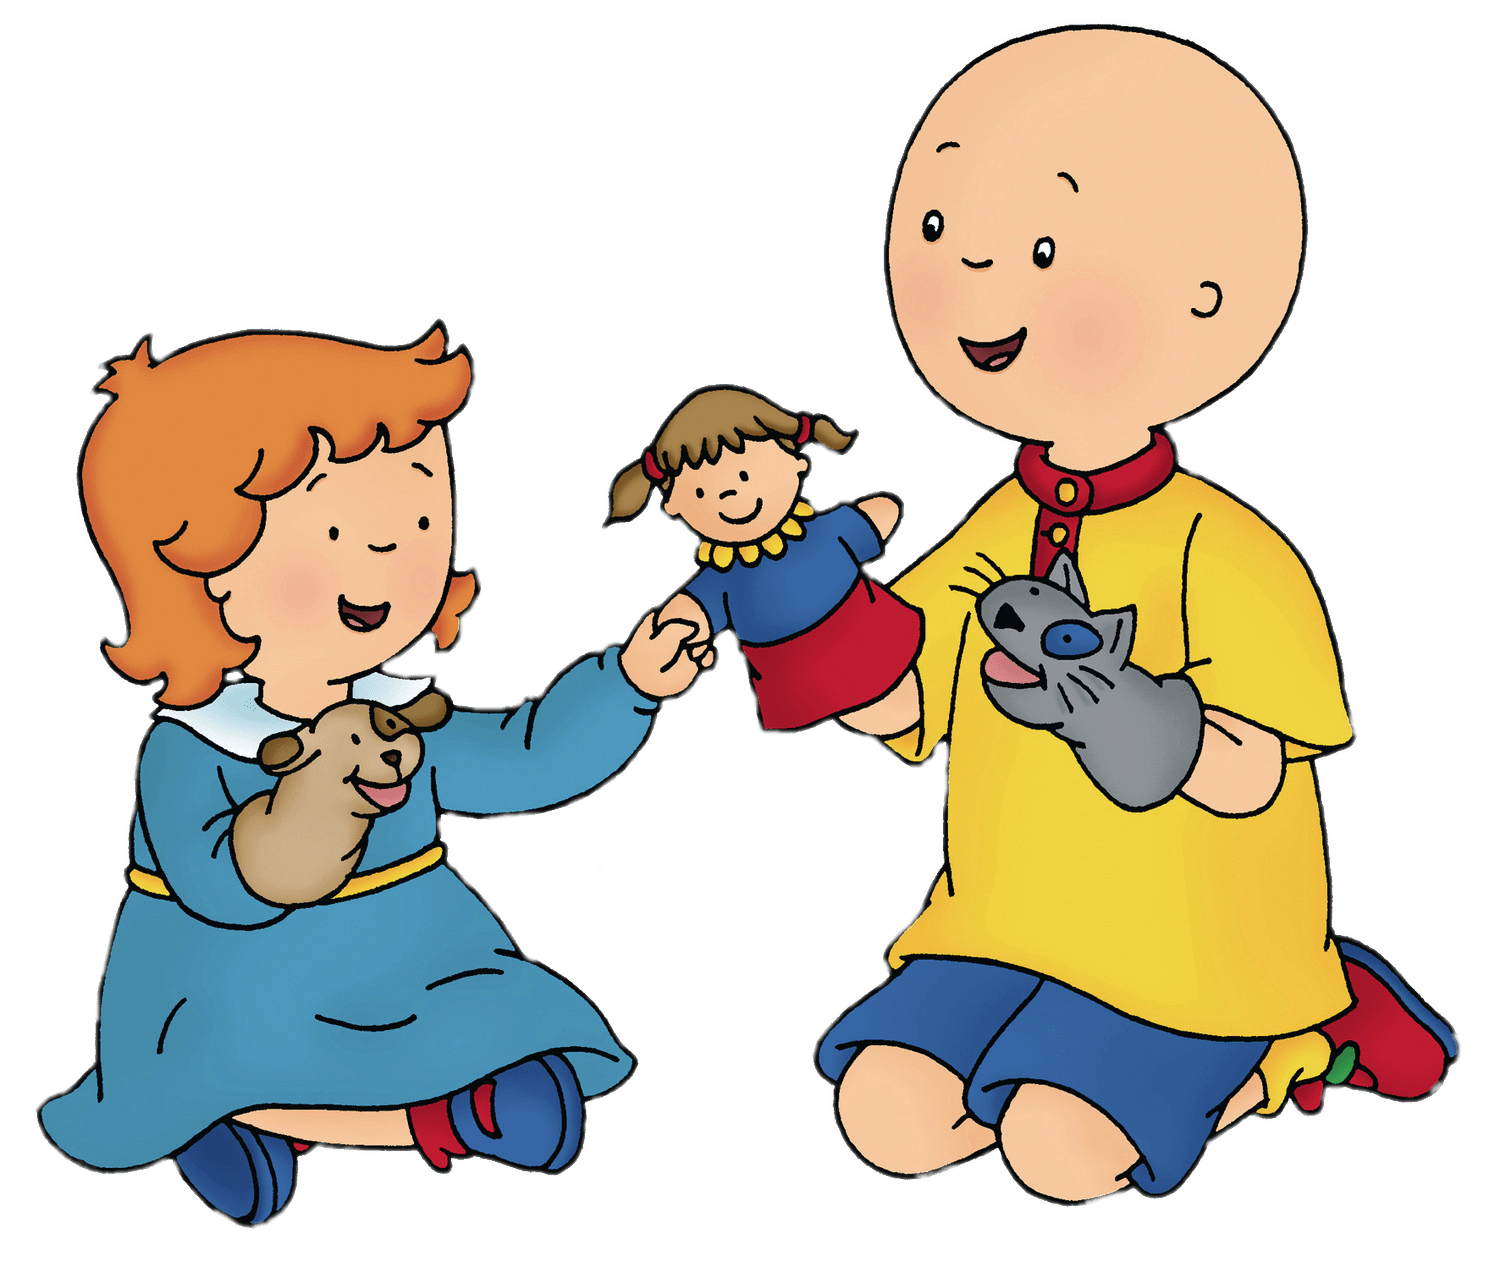 Boy and cat clipart banner royalty free download Caillou and Gilbert the Cat transparent PNG - StickPNG banner royalty free download